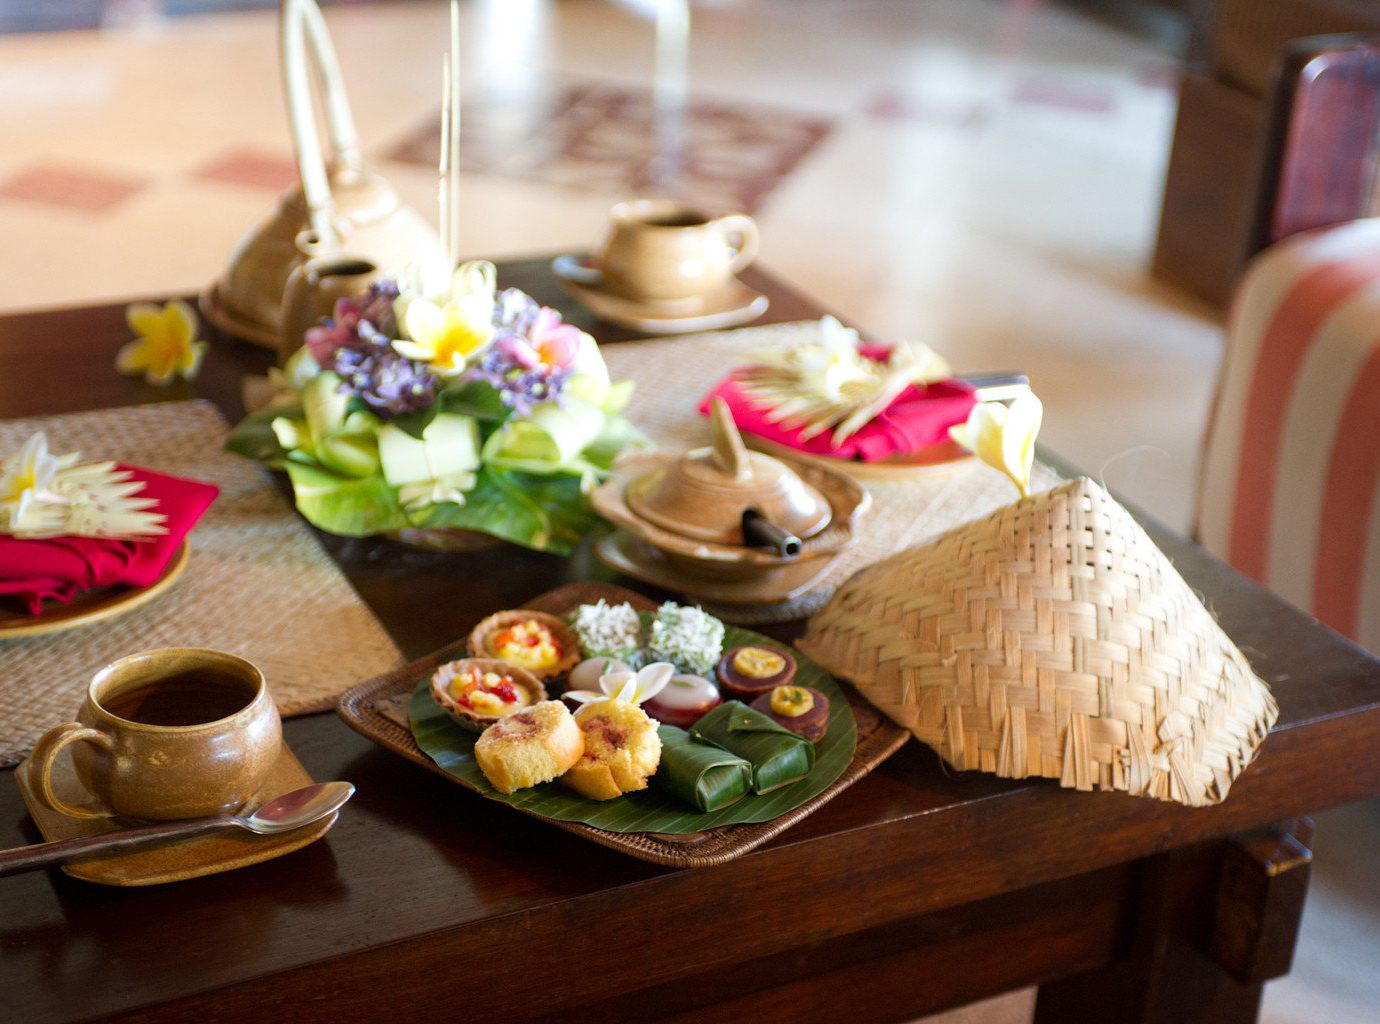 Dining Eat Trip Ideas Tropical table indoor meal wooden lunch brunch food restaurant breakfast dinner dish cuisine buffet dining table